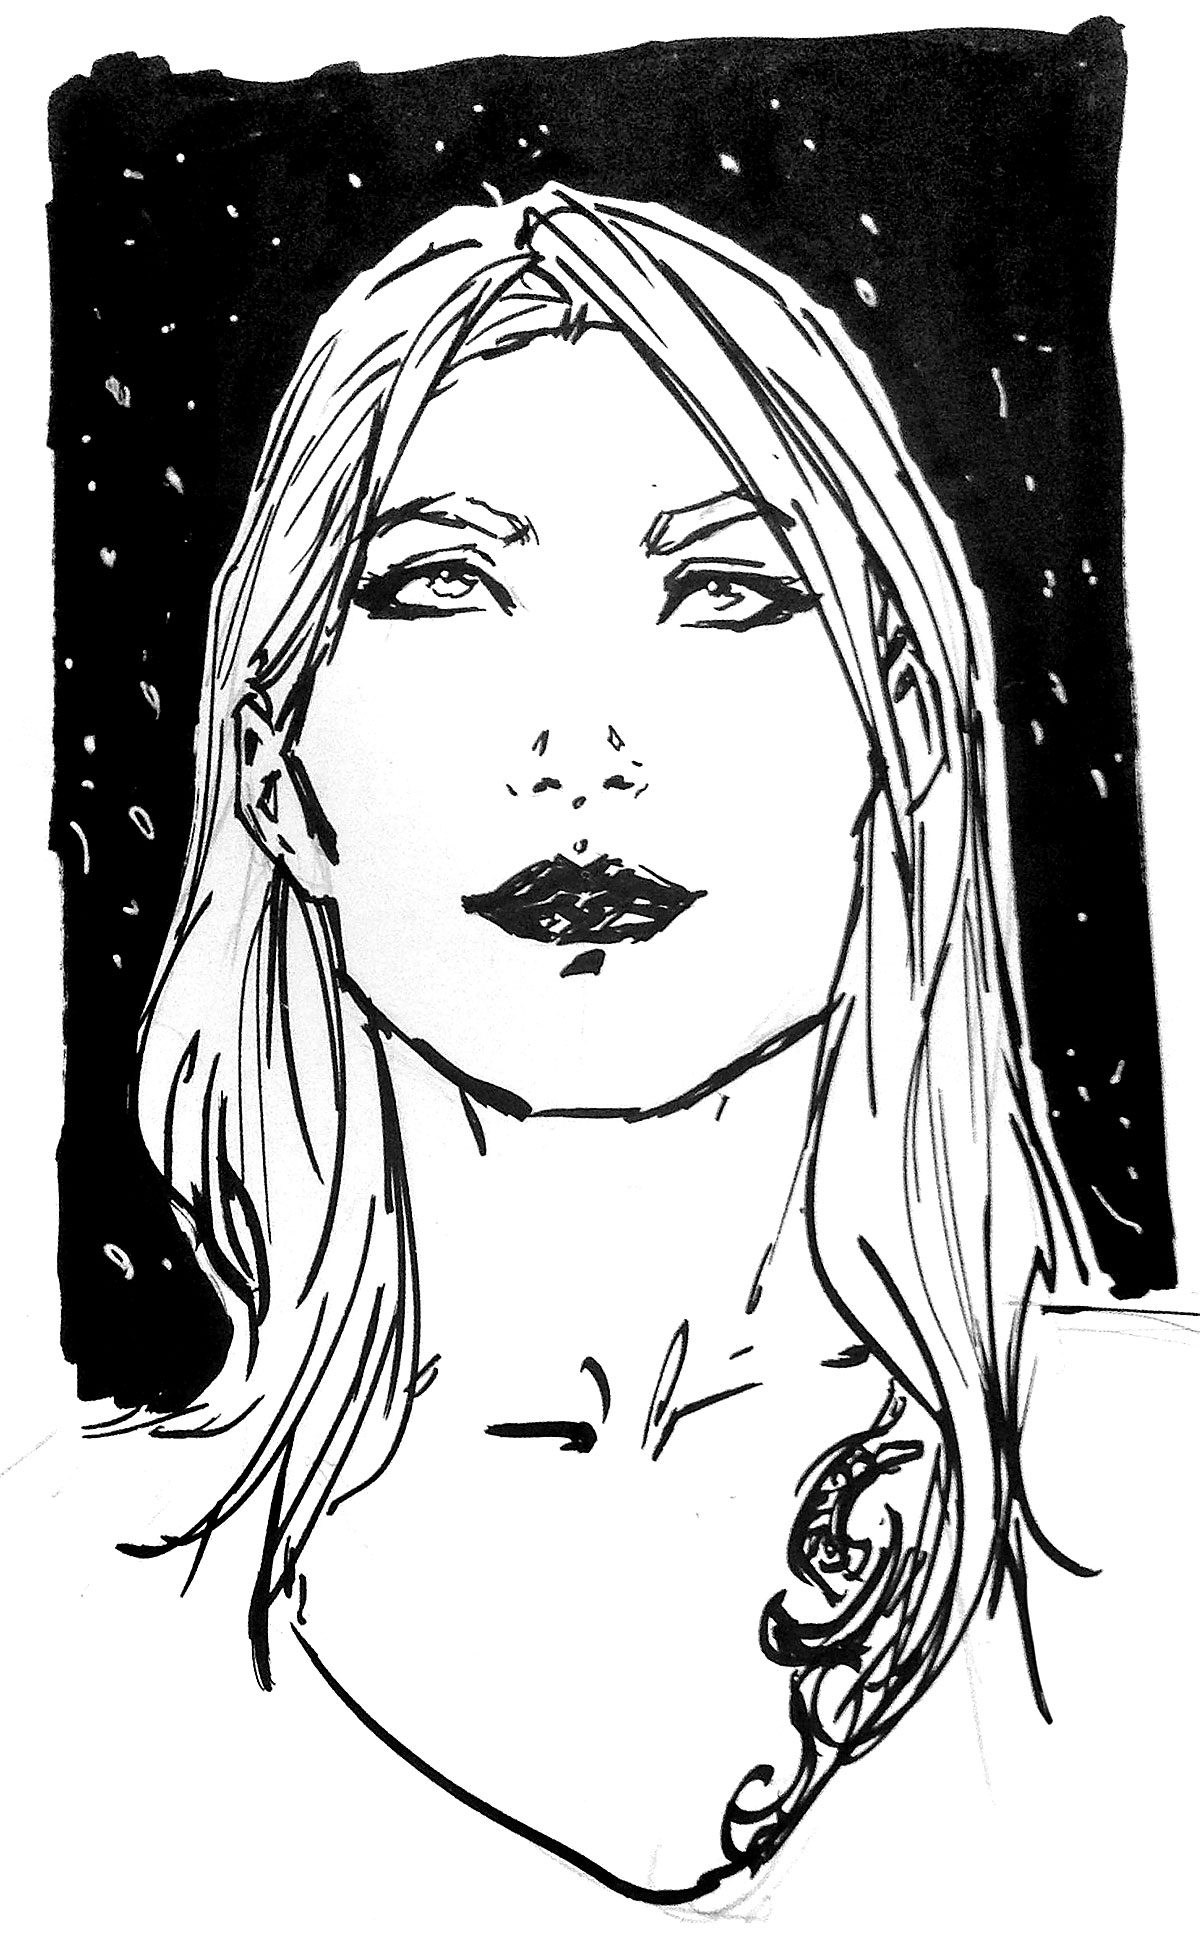 Simple yet striking brush pen illustration of Molly's face, looking self-assured and ethereal before a snowy backdrop.